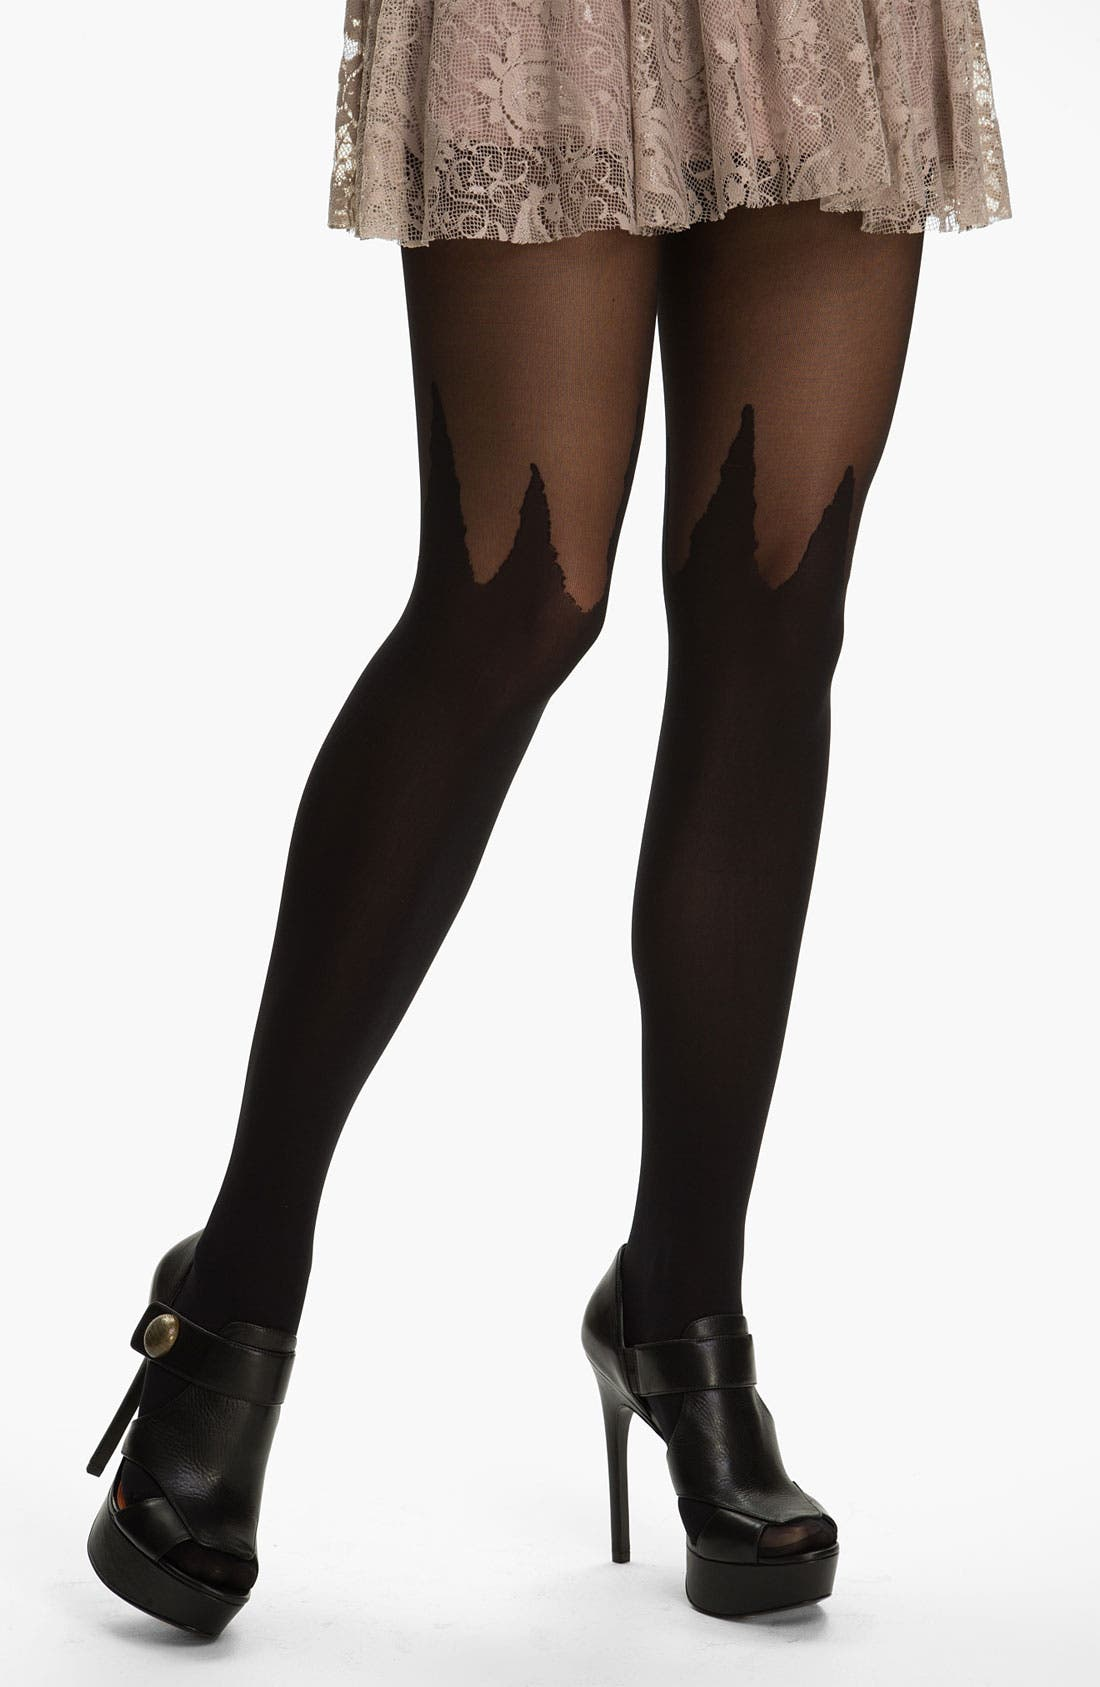 'House of Holland - Spike' Tights,                             Main thumbnail 1, color,                             007